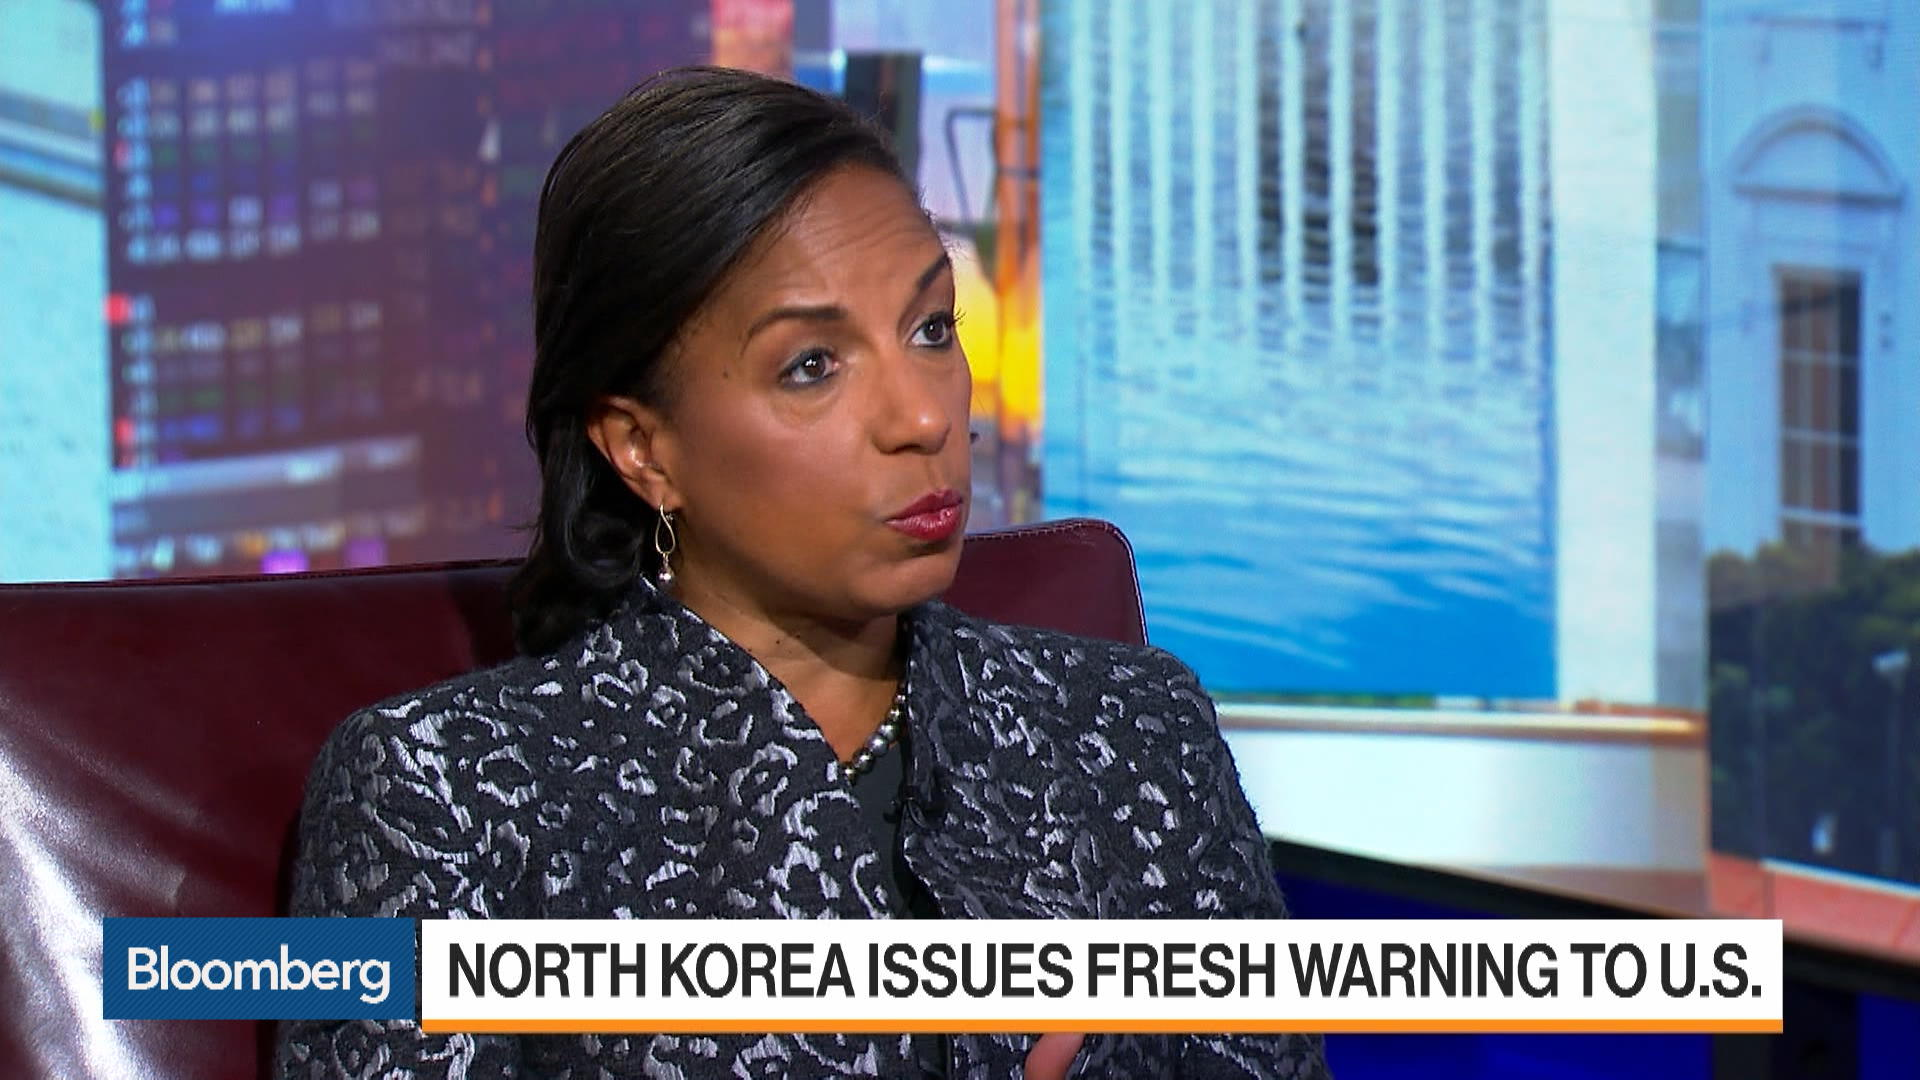 Trump Has to Try Negotiating With North Korea: Susan Rice